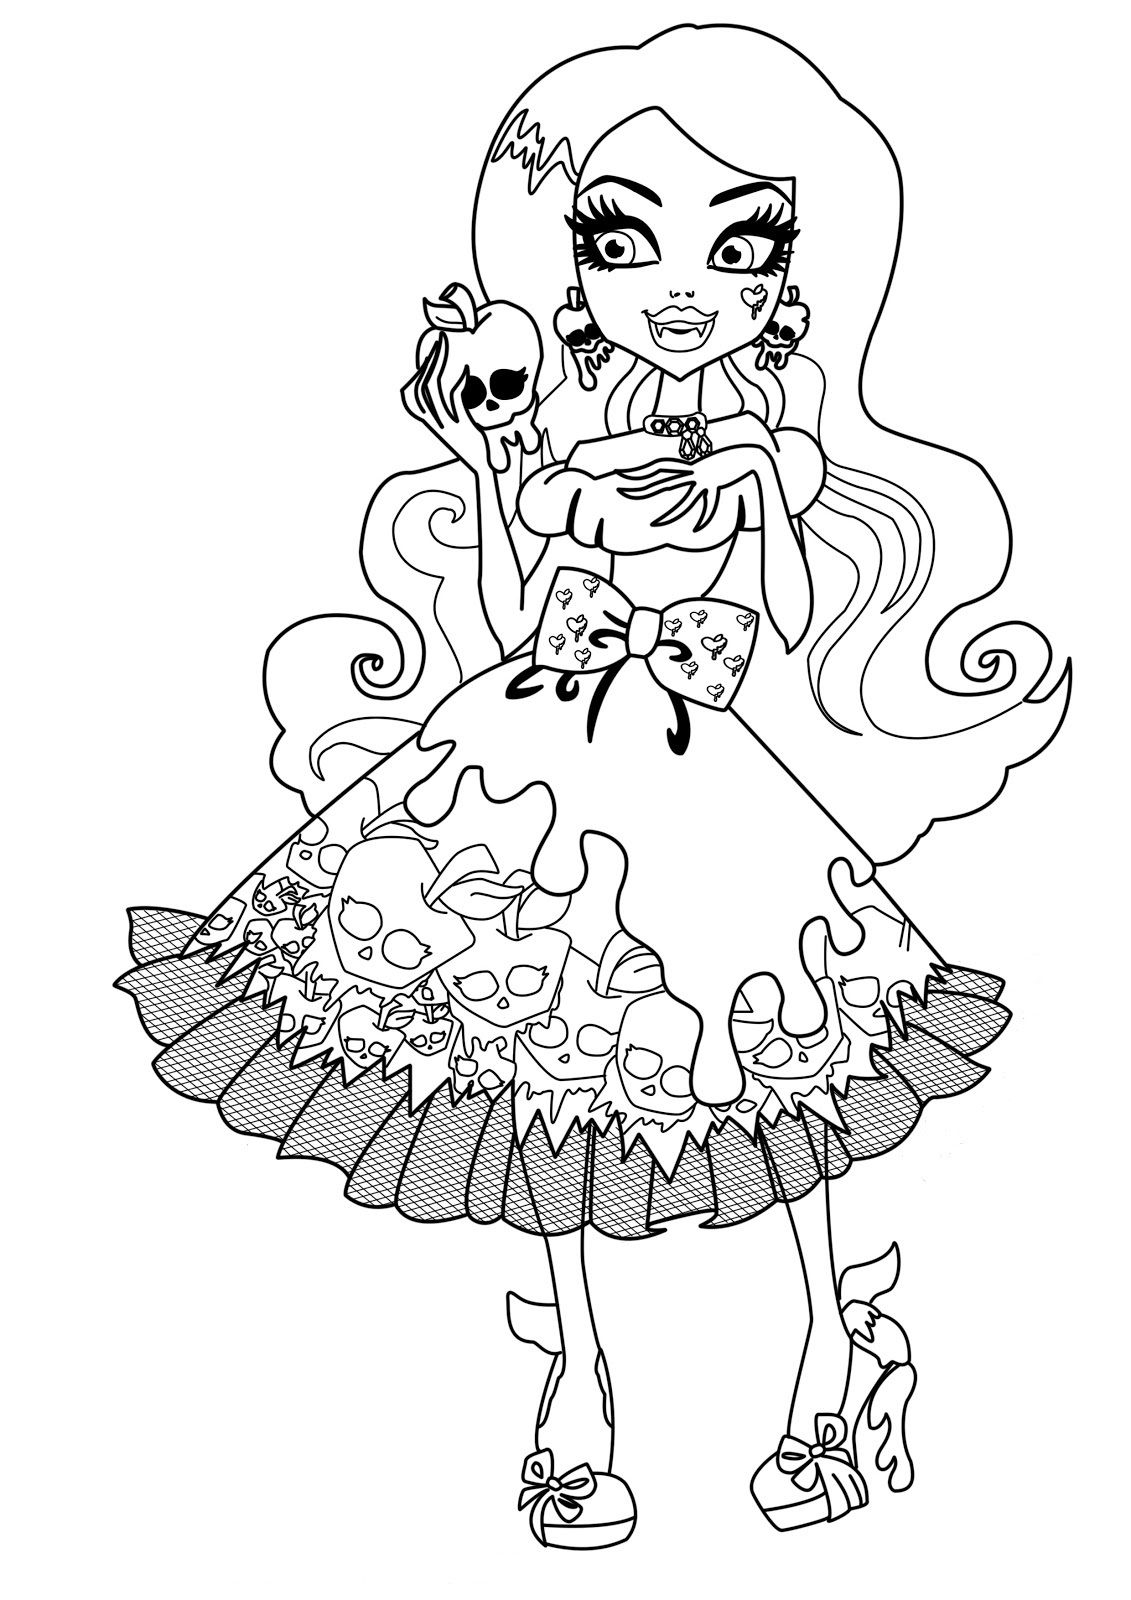 Draculaura Monster High Dolls Coloring Pages Monster High Coloring to Print Of Monster High Coloring Pages Monster High Coloring Page All Collection